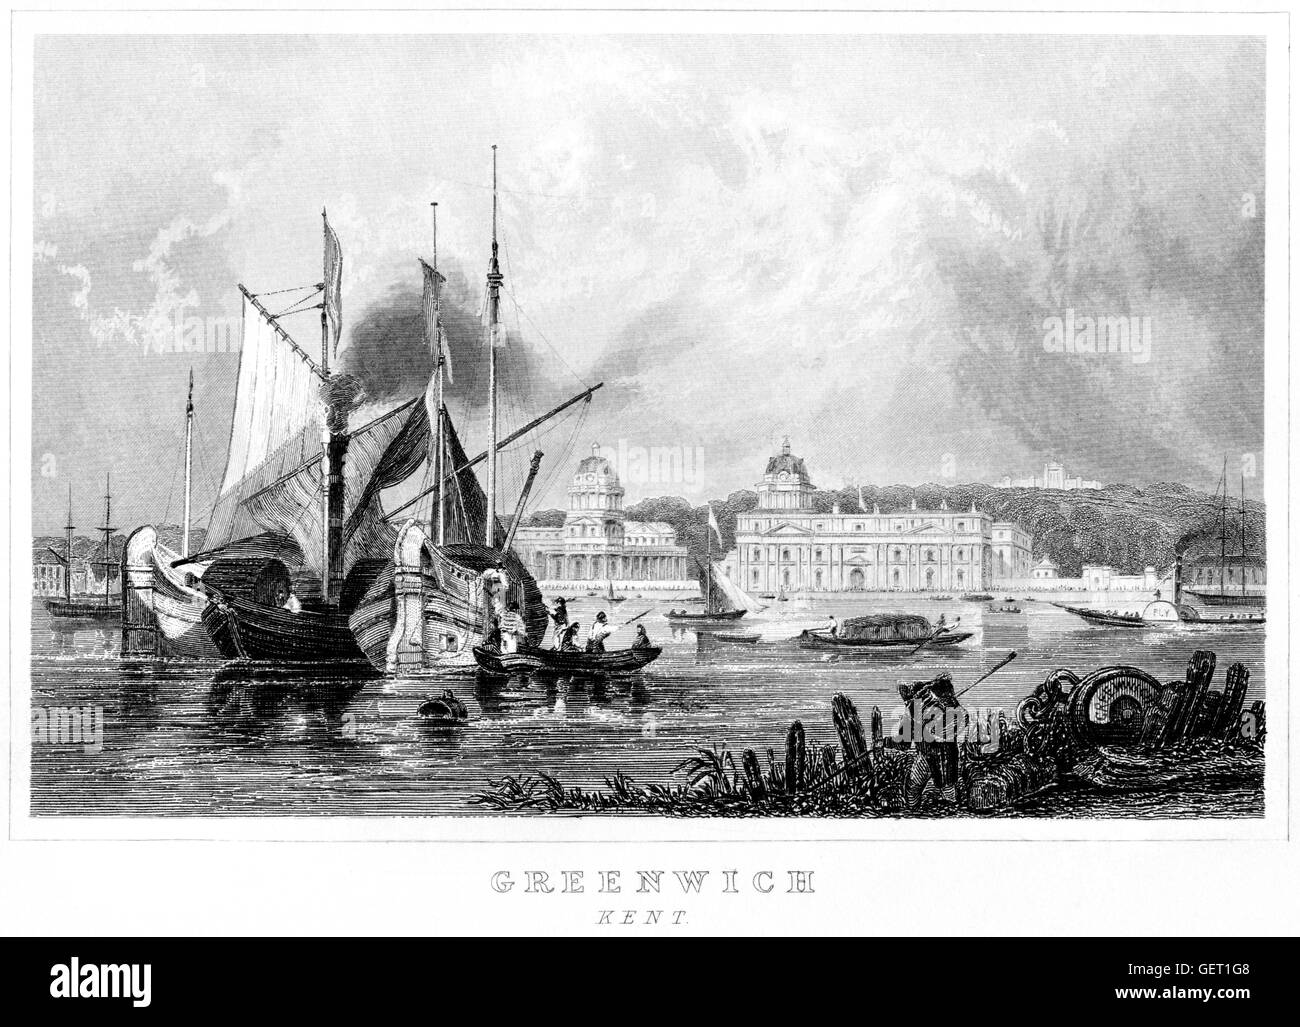 An engraving of Greenwich, Kent scanned at high resolution from a book printed in 1846. Believed to be copyright - Stock Image